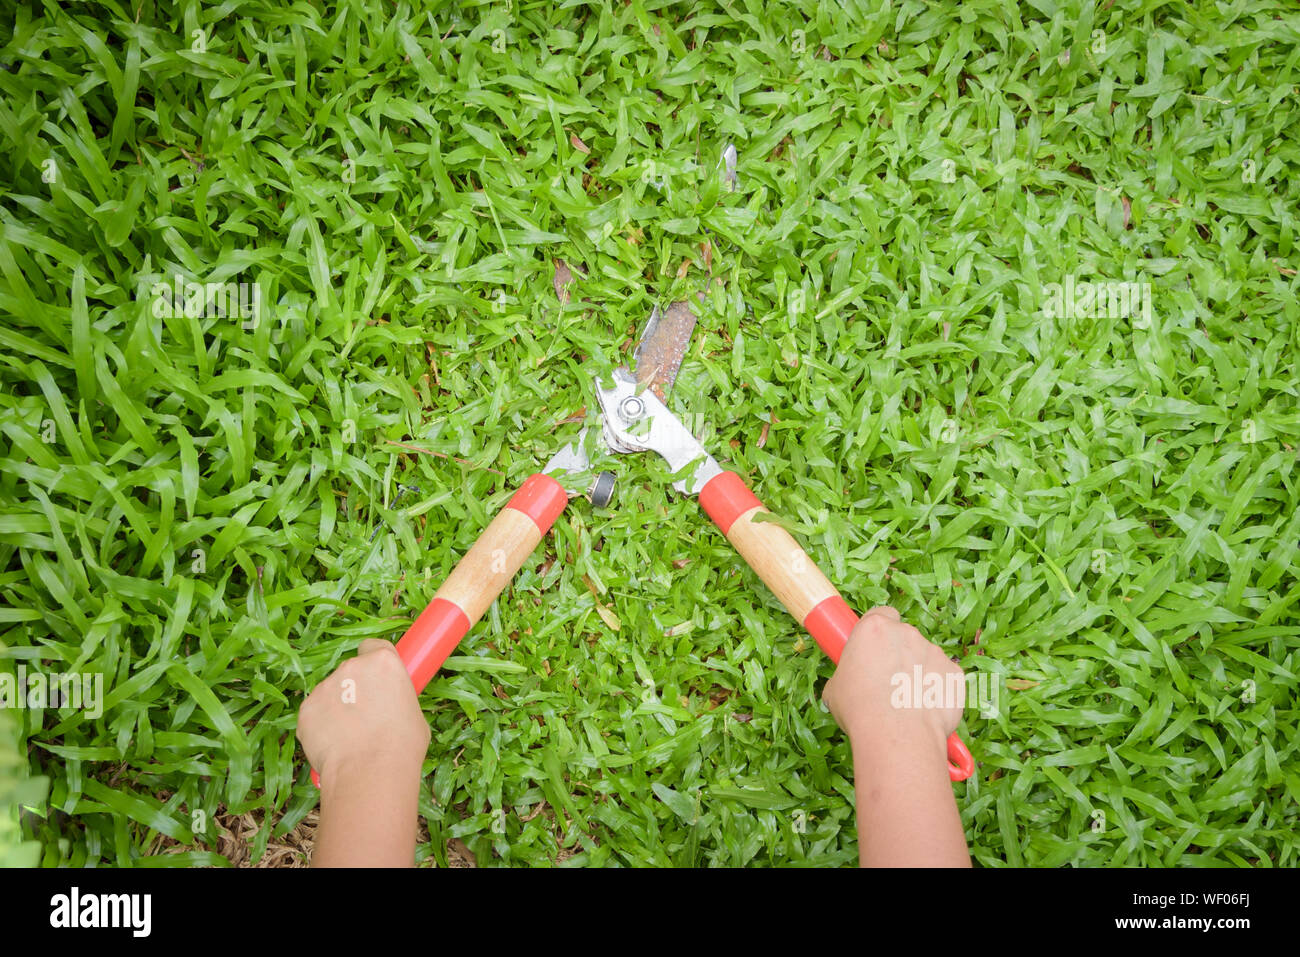 Cropped Hands Of Woman Cutting Grass Stock Photo